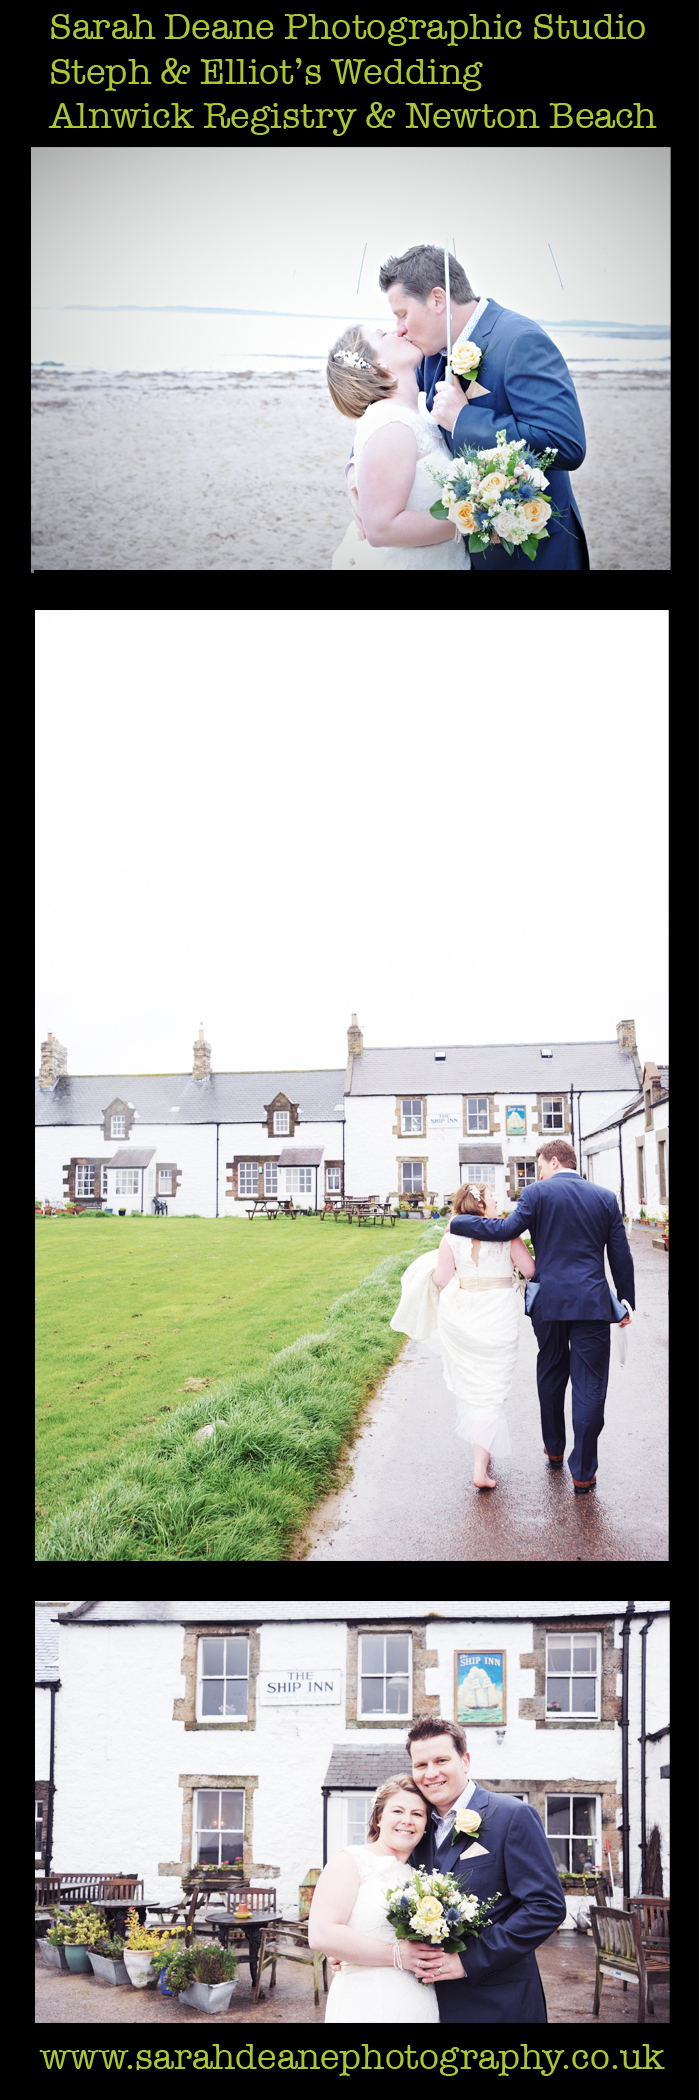 vintage wedding photos at the ship inn pub low newton beach wedding photography